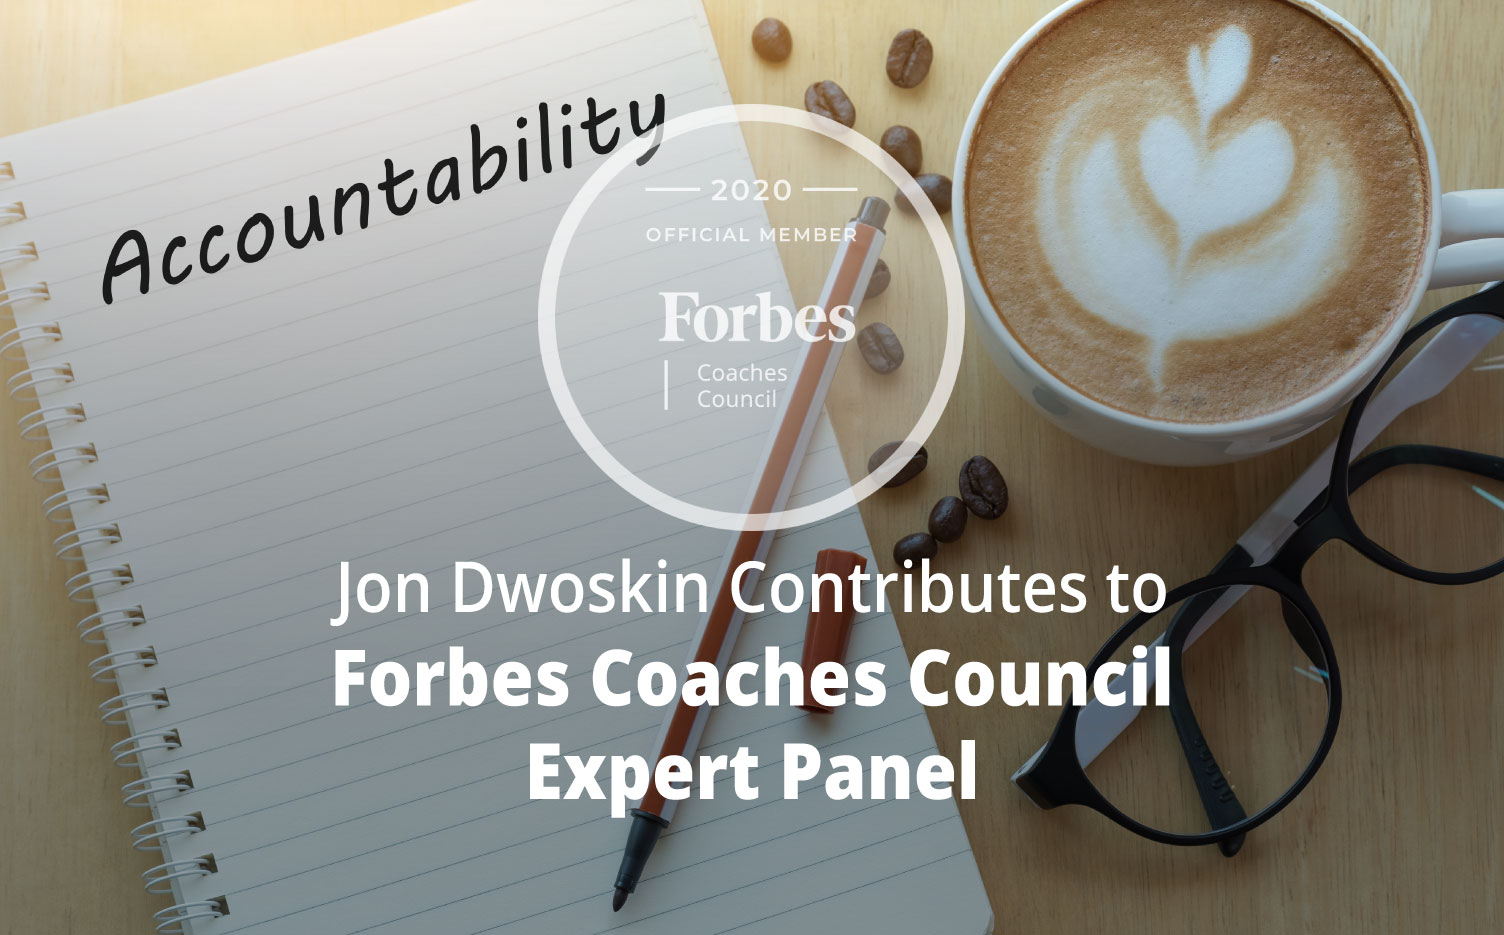 Jon Dwoskin Contributes to Forbes Coaches Council Expert Panel: 15 Ways For Business Leaders To Be Accountable For Bad Decisions